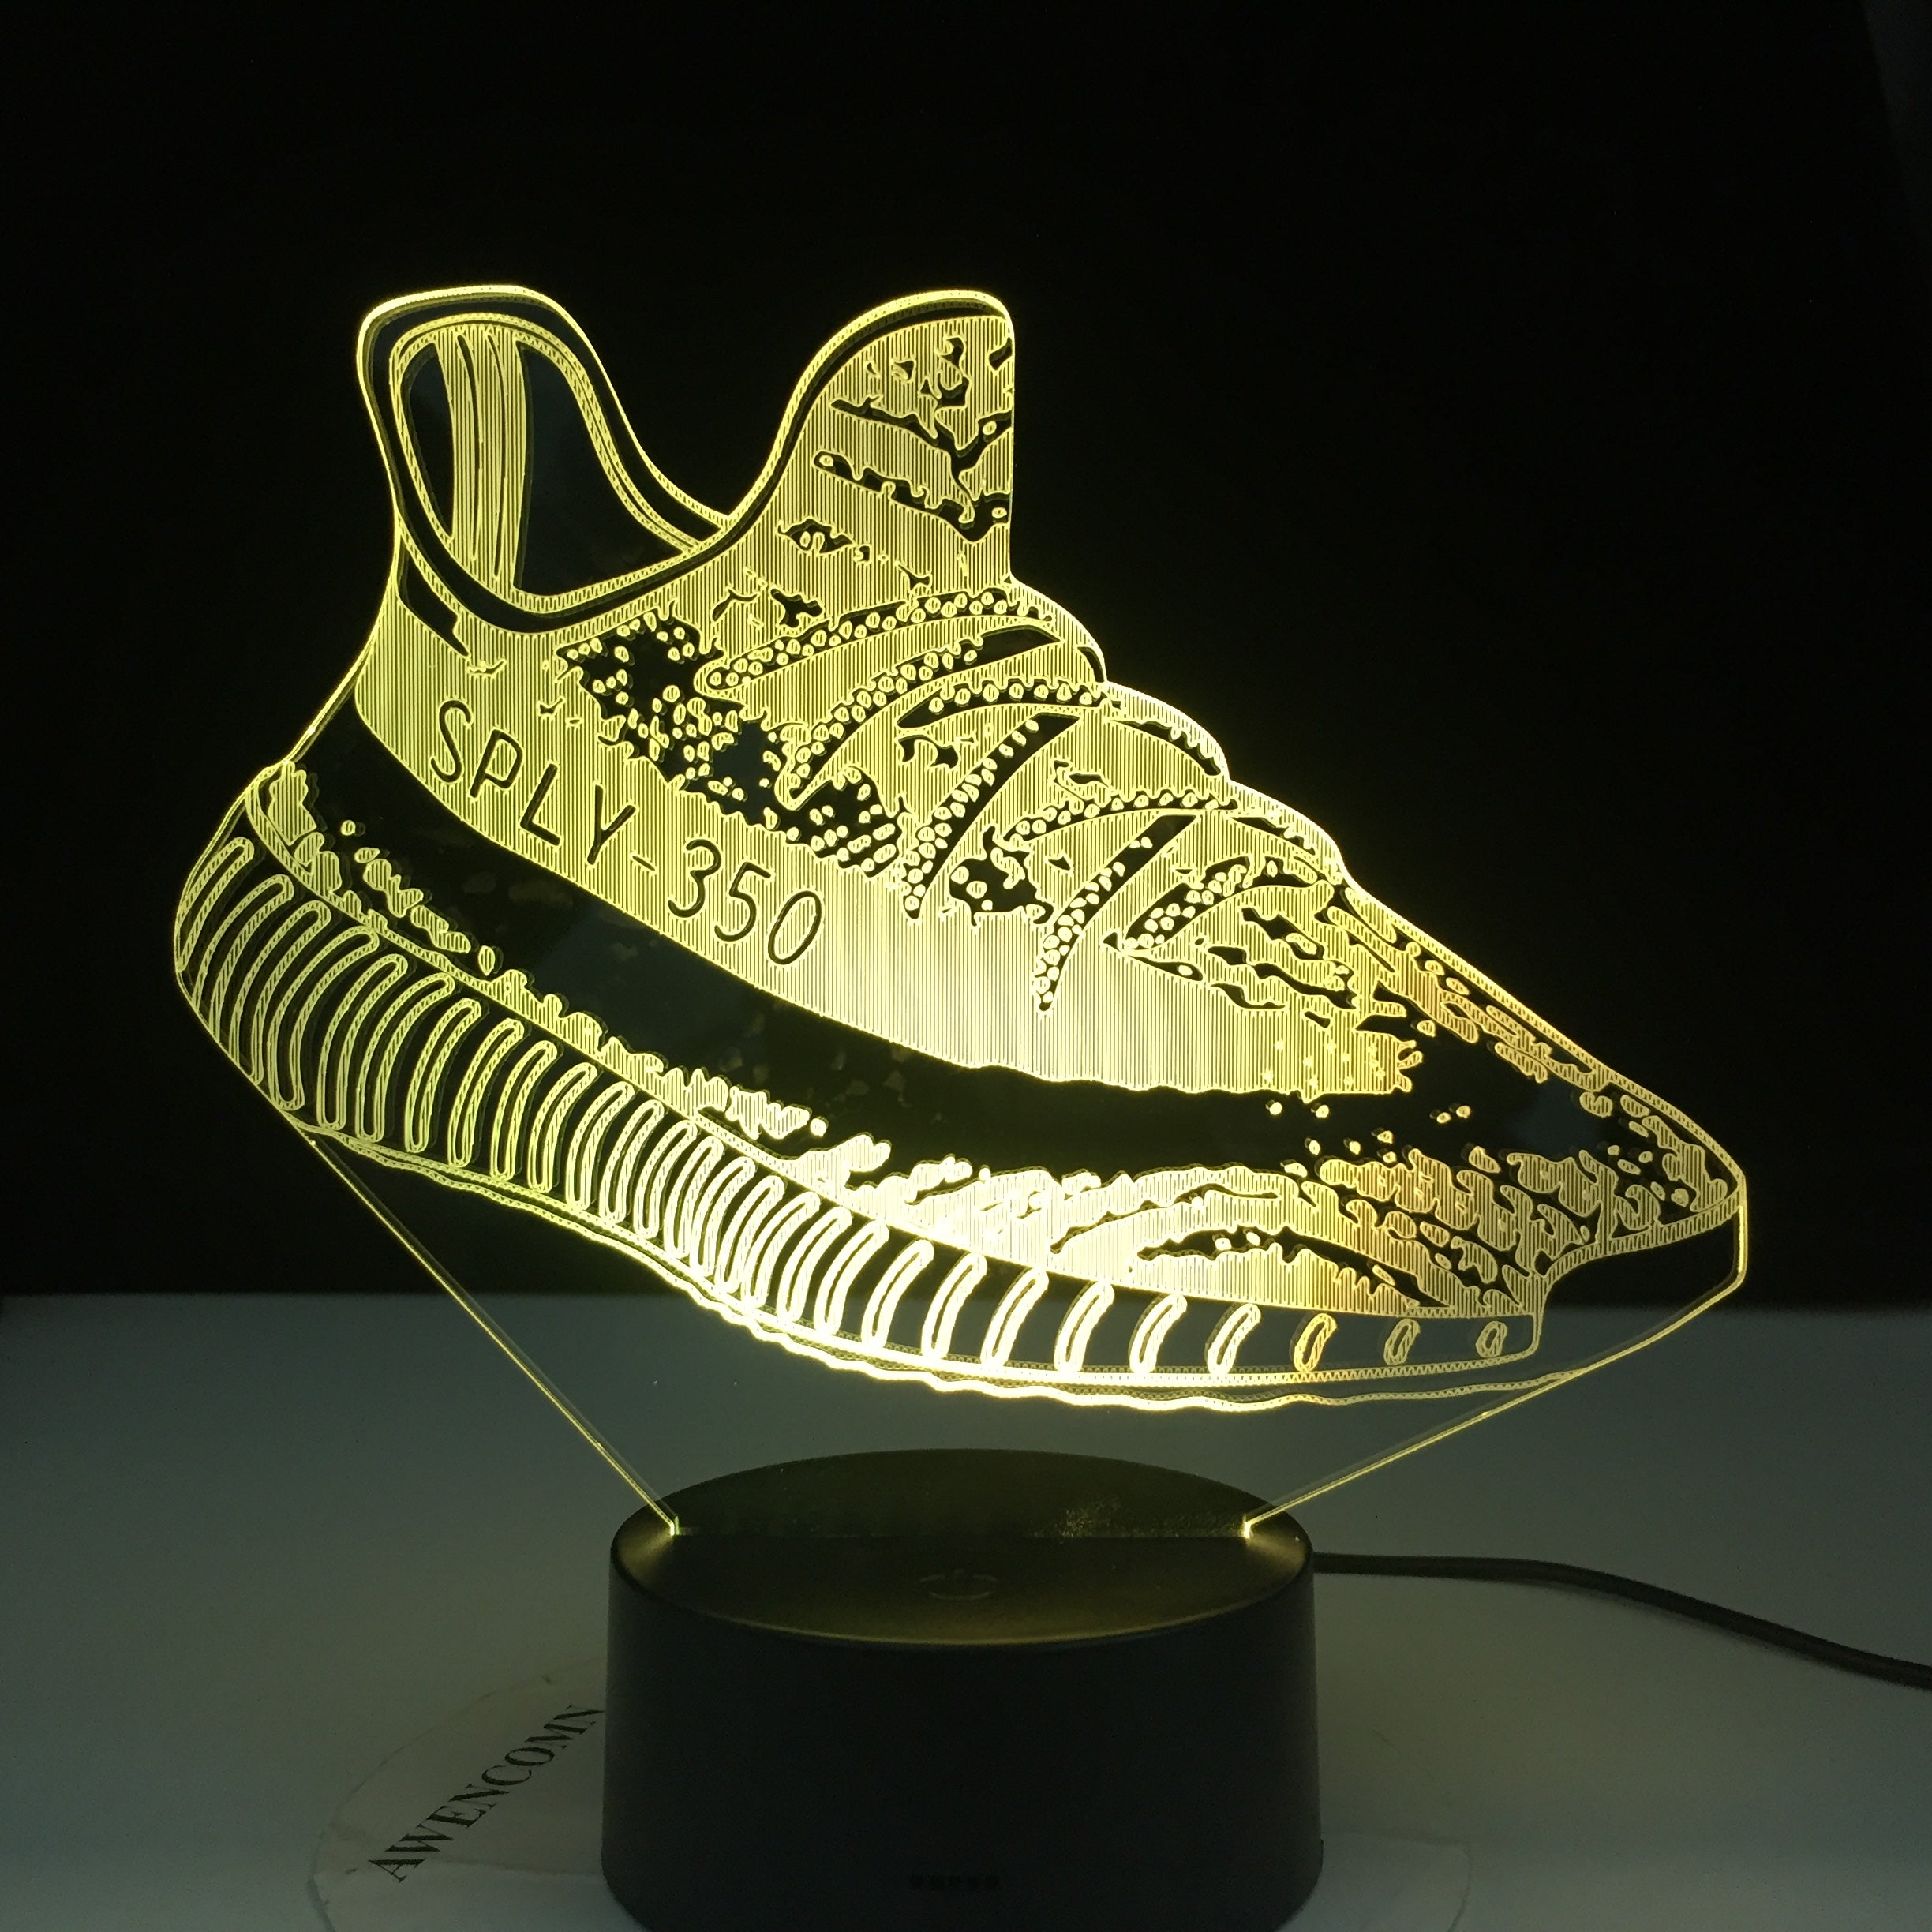 Creative Usb 3D Led Touch Switch Shoes Shape Atmosphere Night Light For Sports Fans Bedroom Movement Lighting Fixture Desk Lamp